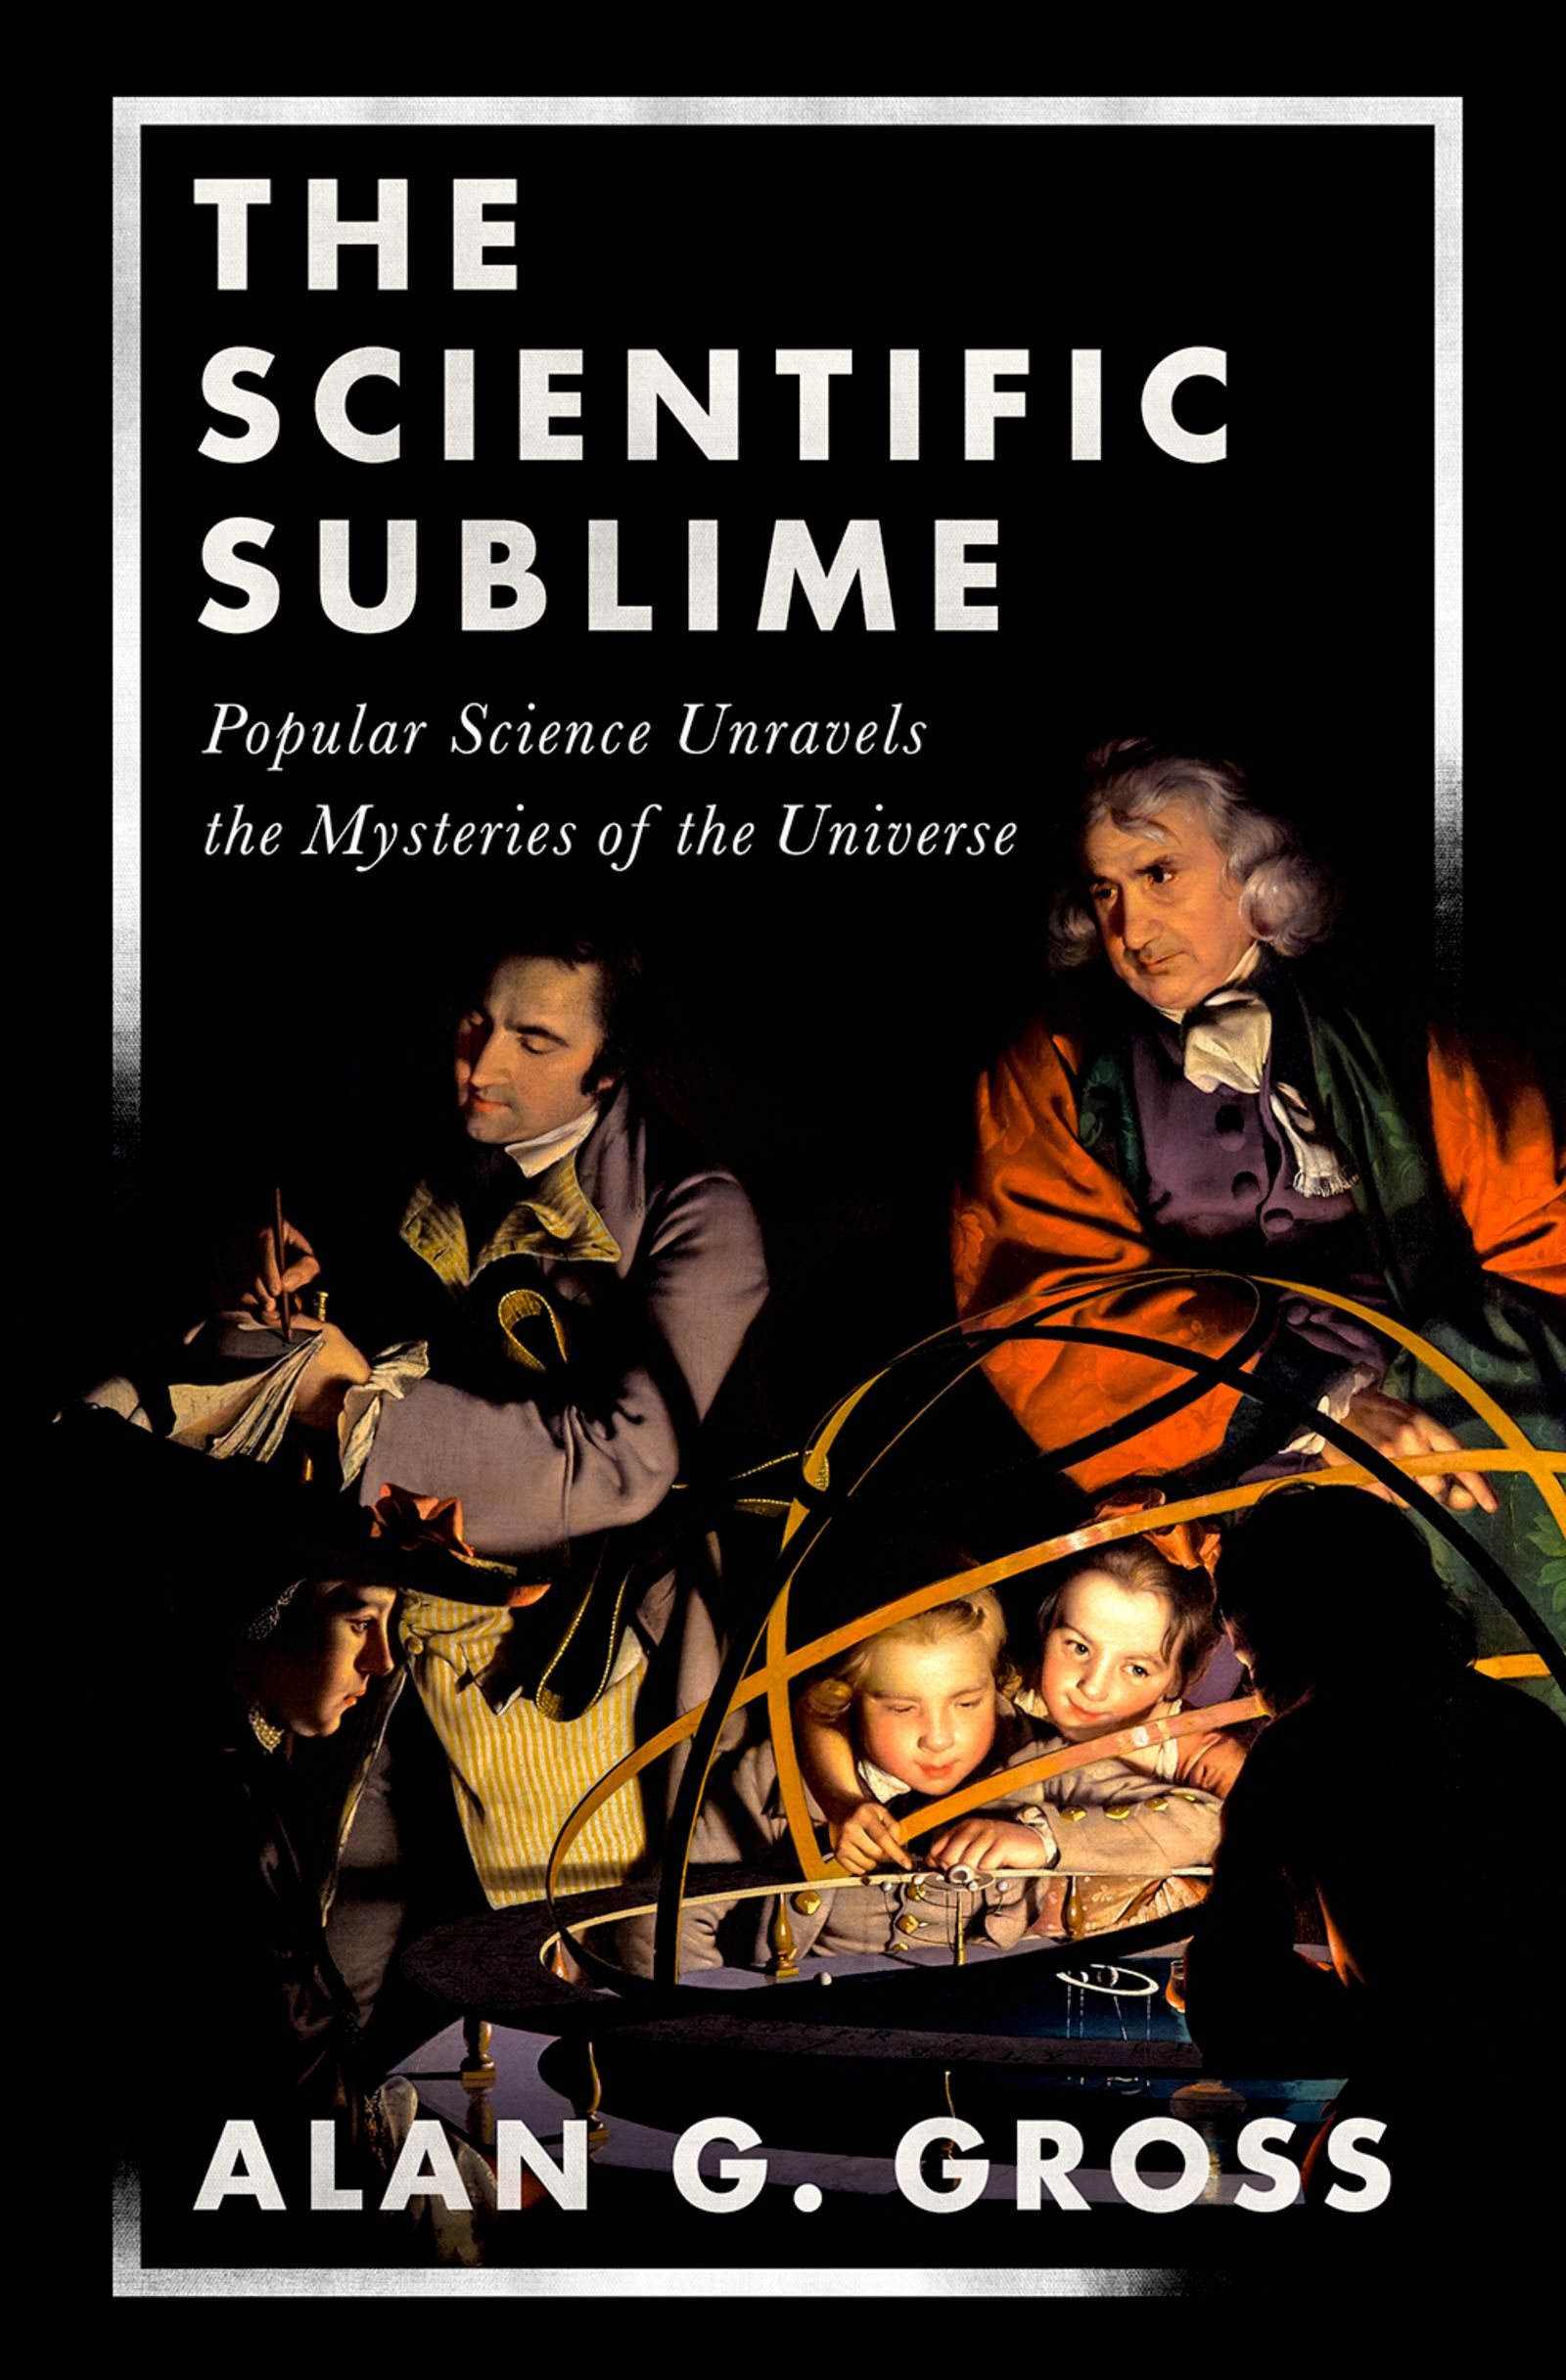 The Scientific Sublime: Popular Science Unravels the Mysteries of the Universe